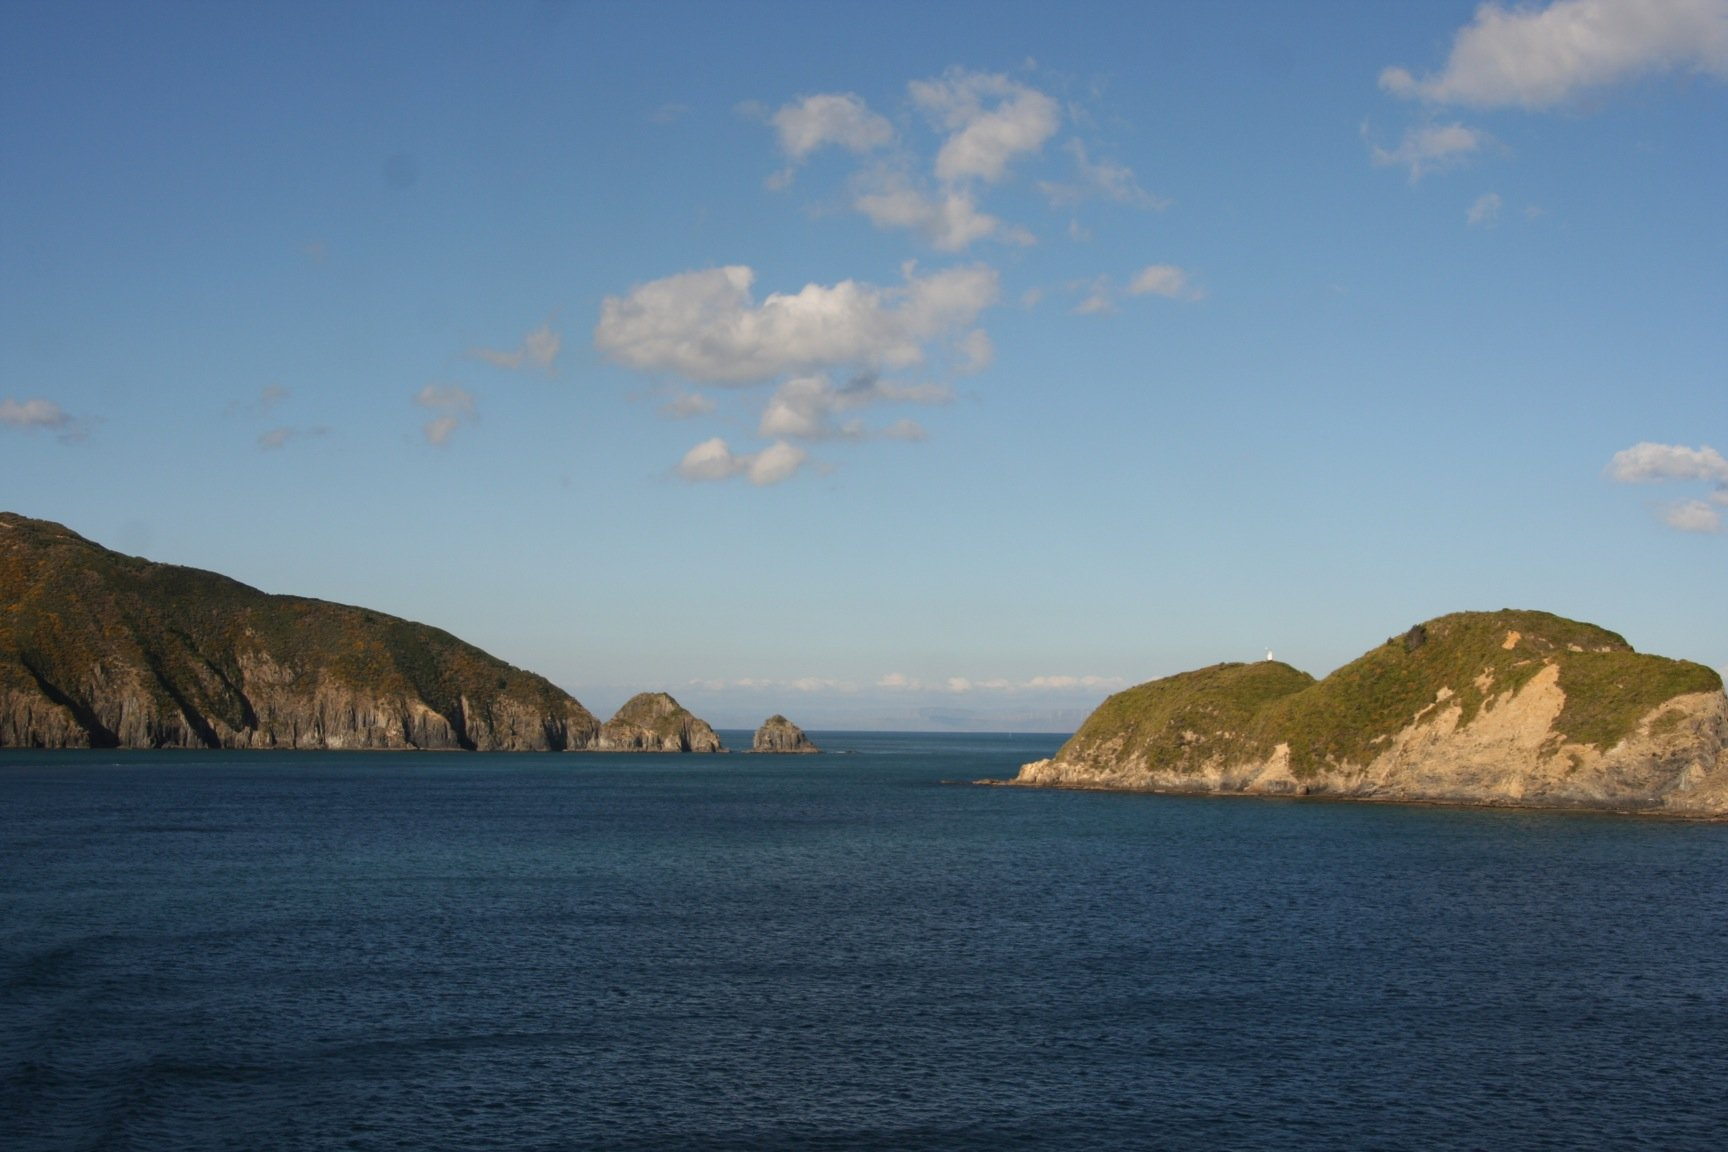 Marlborough Sounds entrance